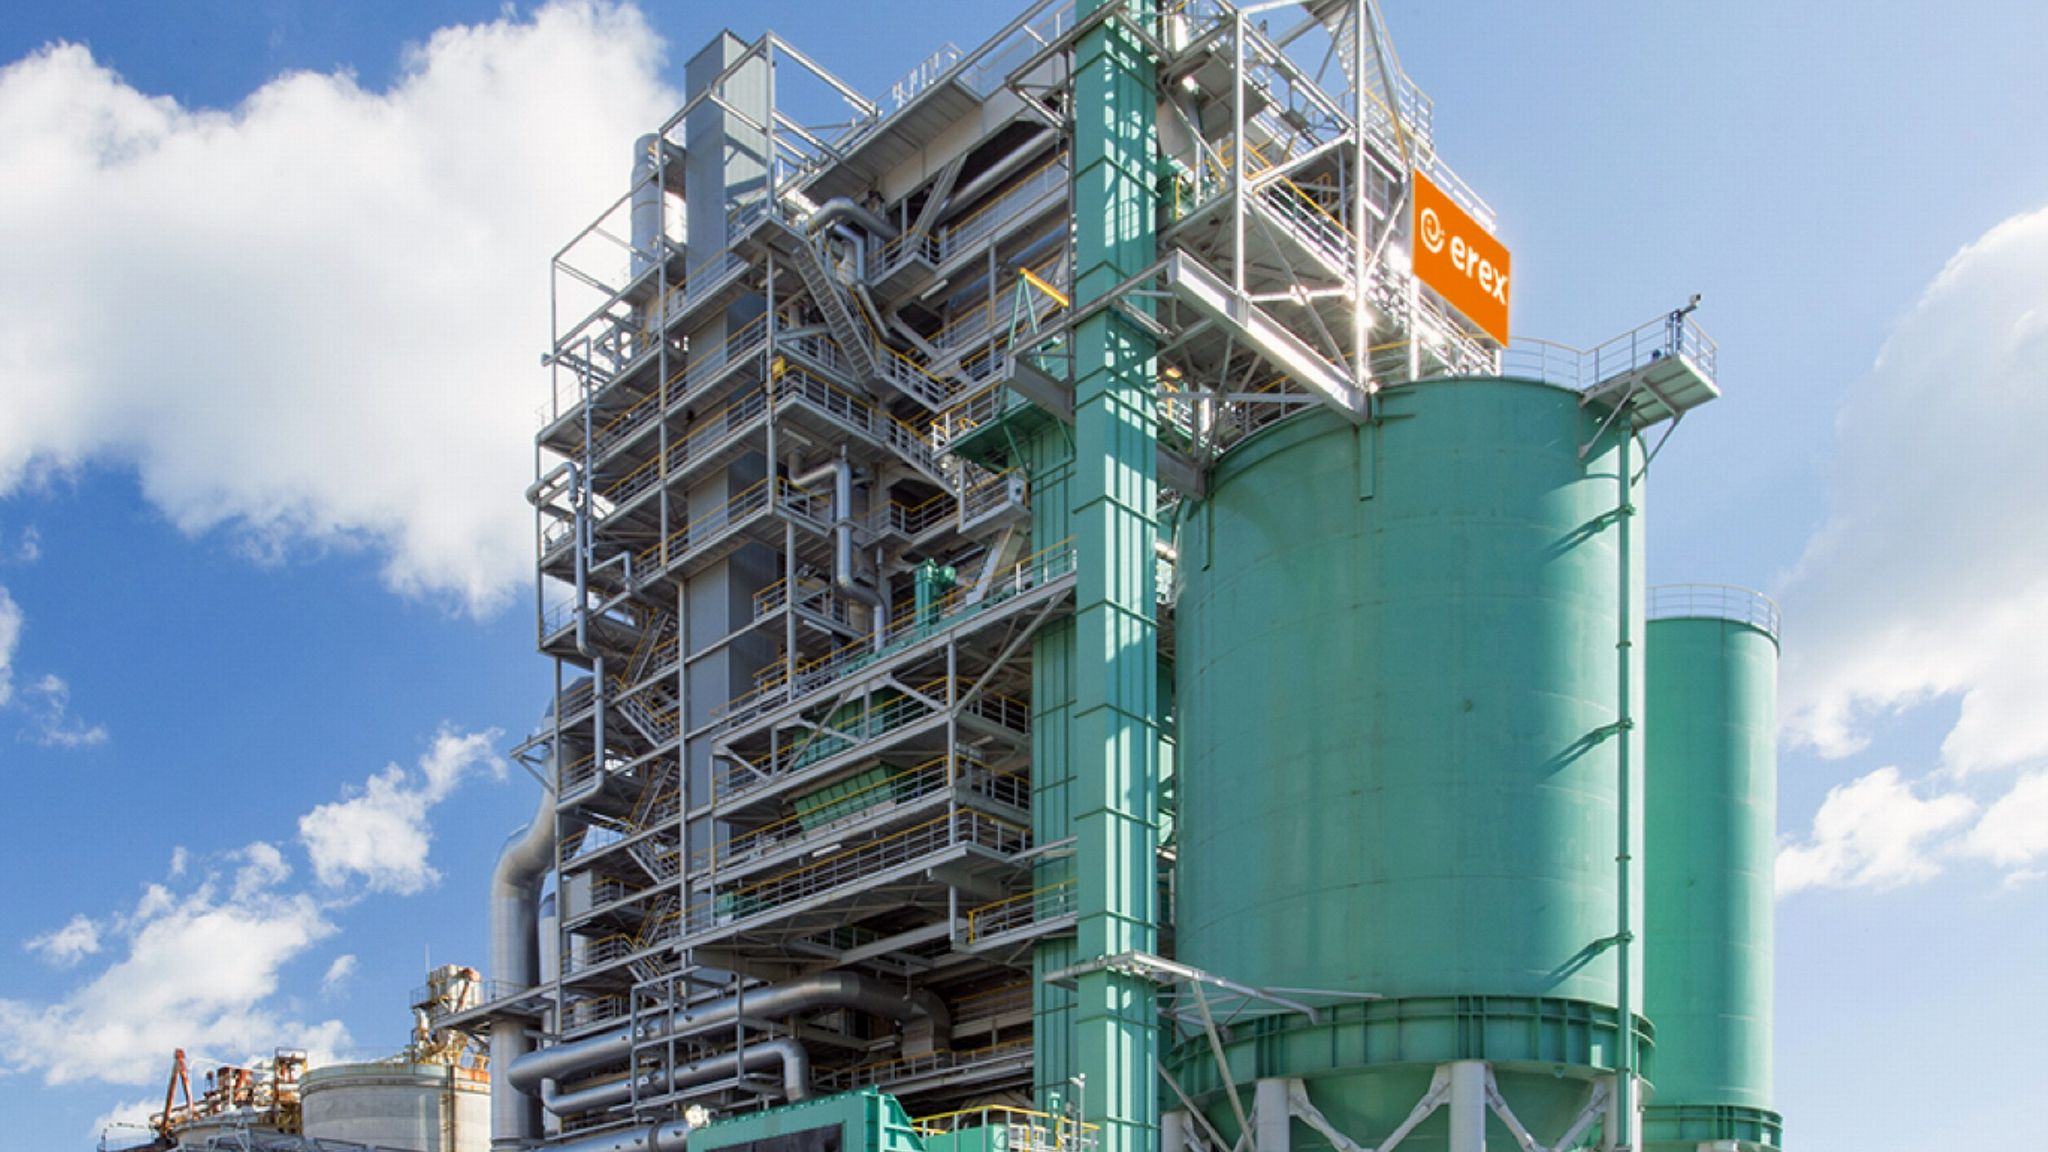 Japan to host one of world's largest biomass power plants